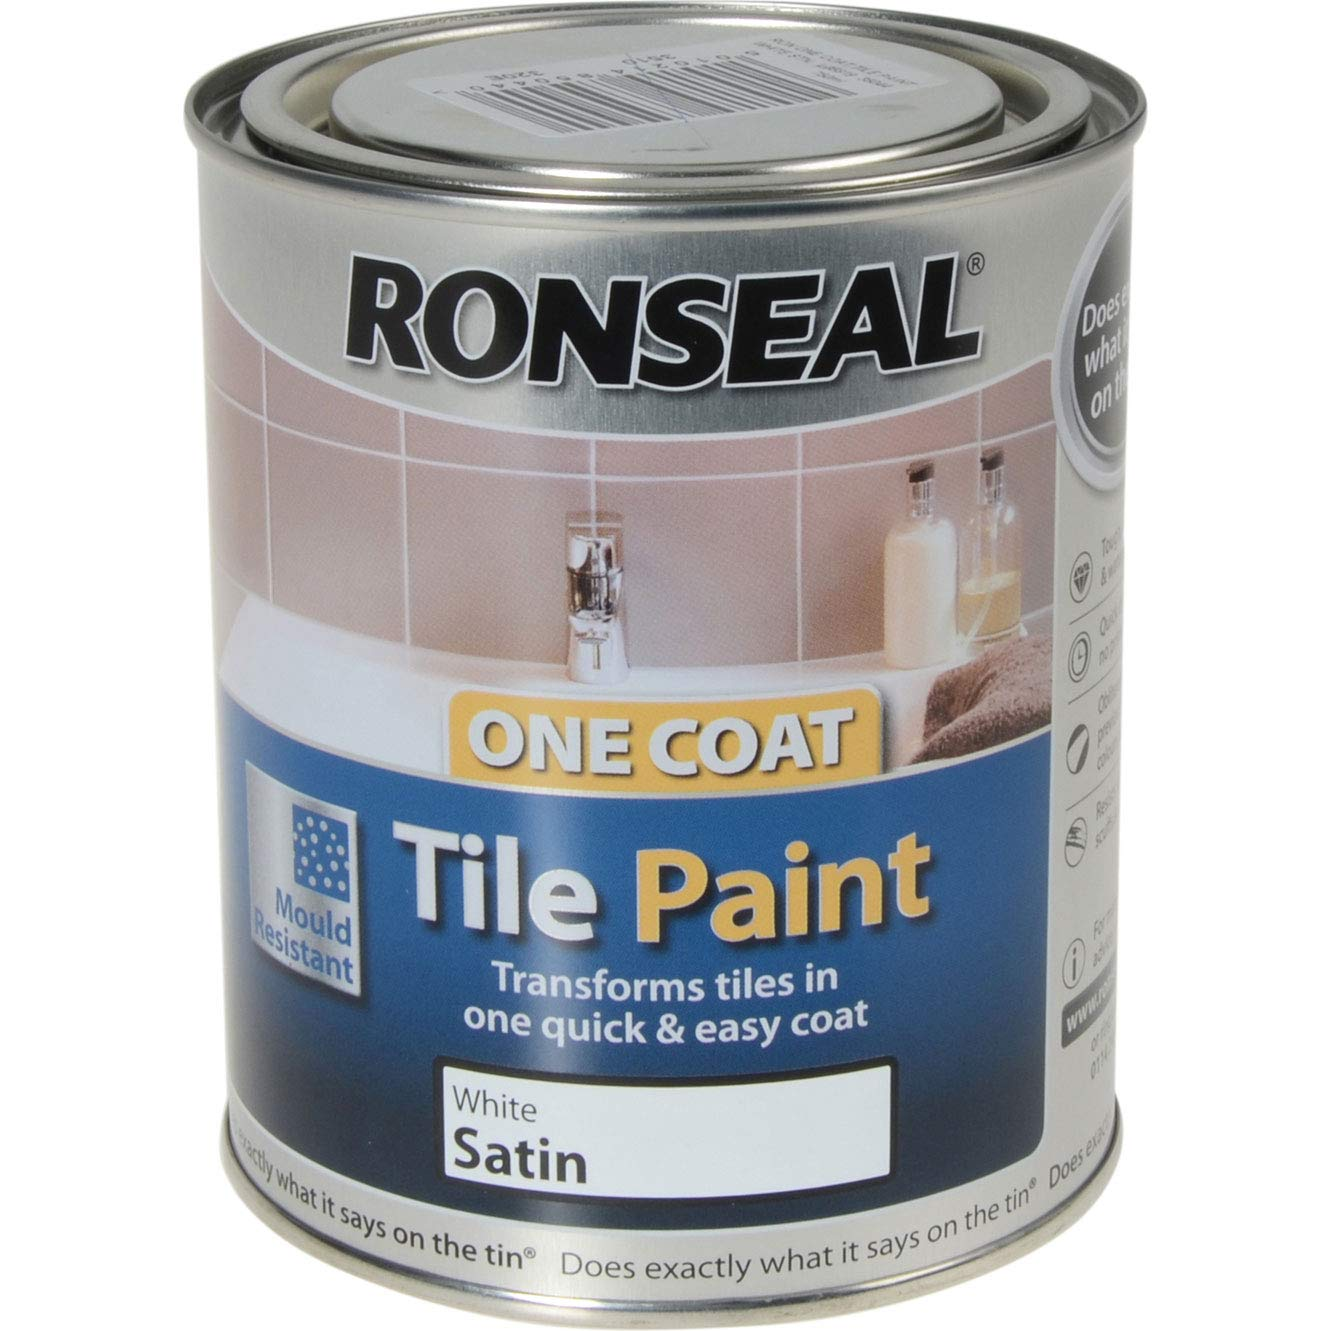 Ronseal One Coat Tile Paint - Brilliant White - 750ml